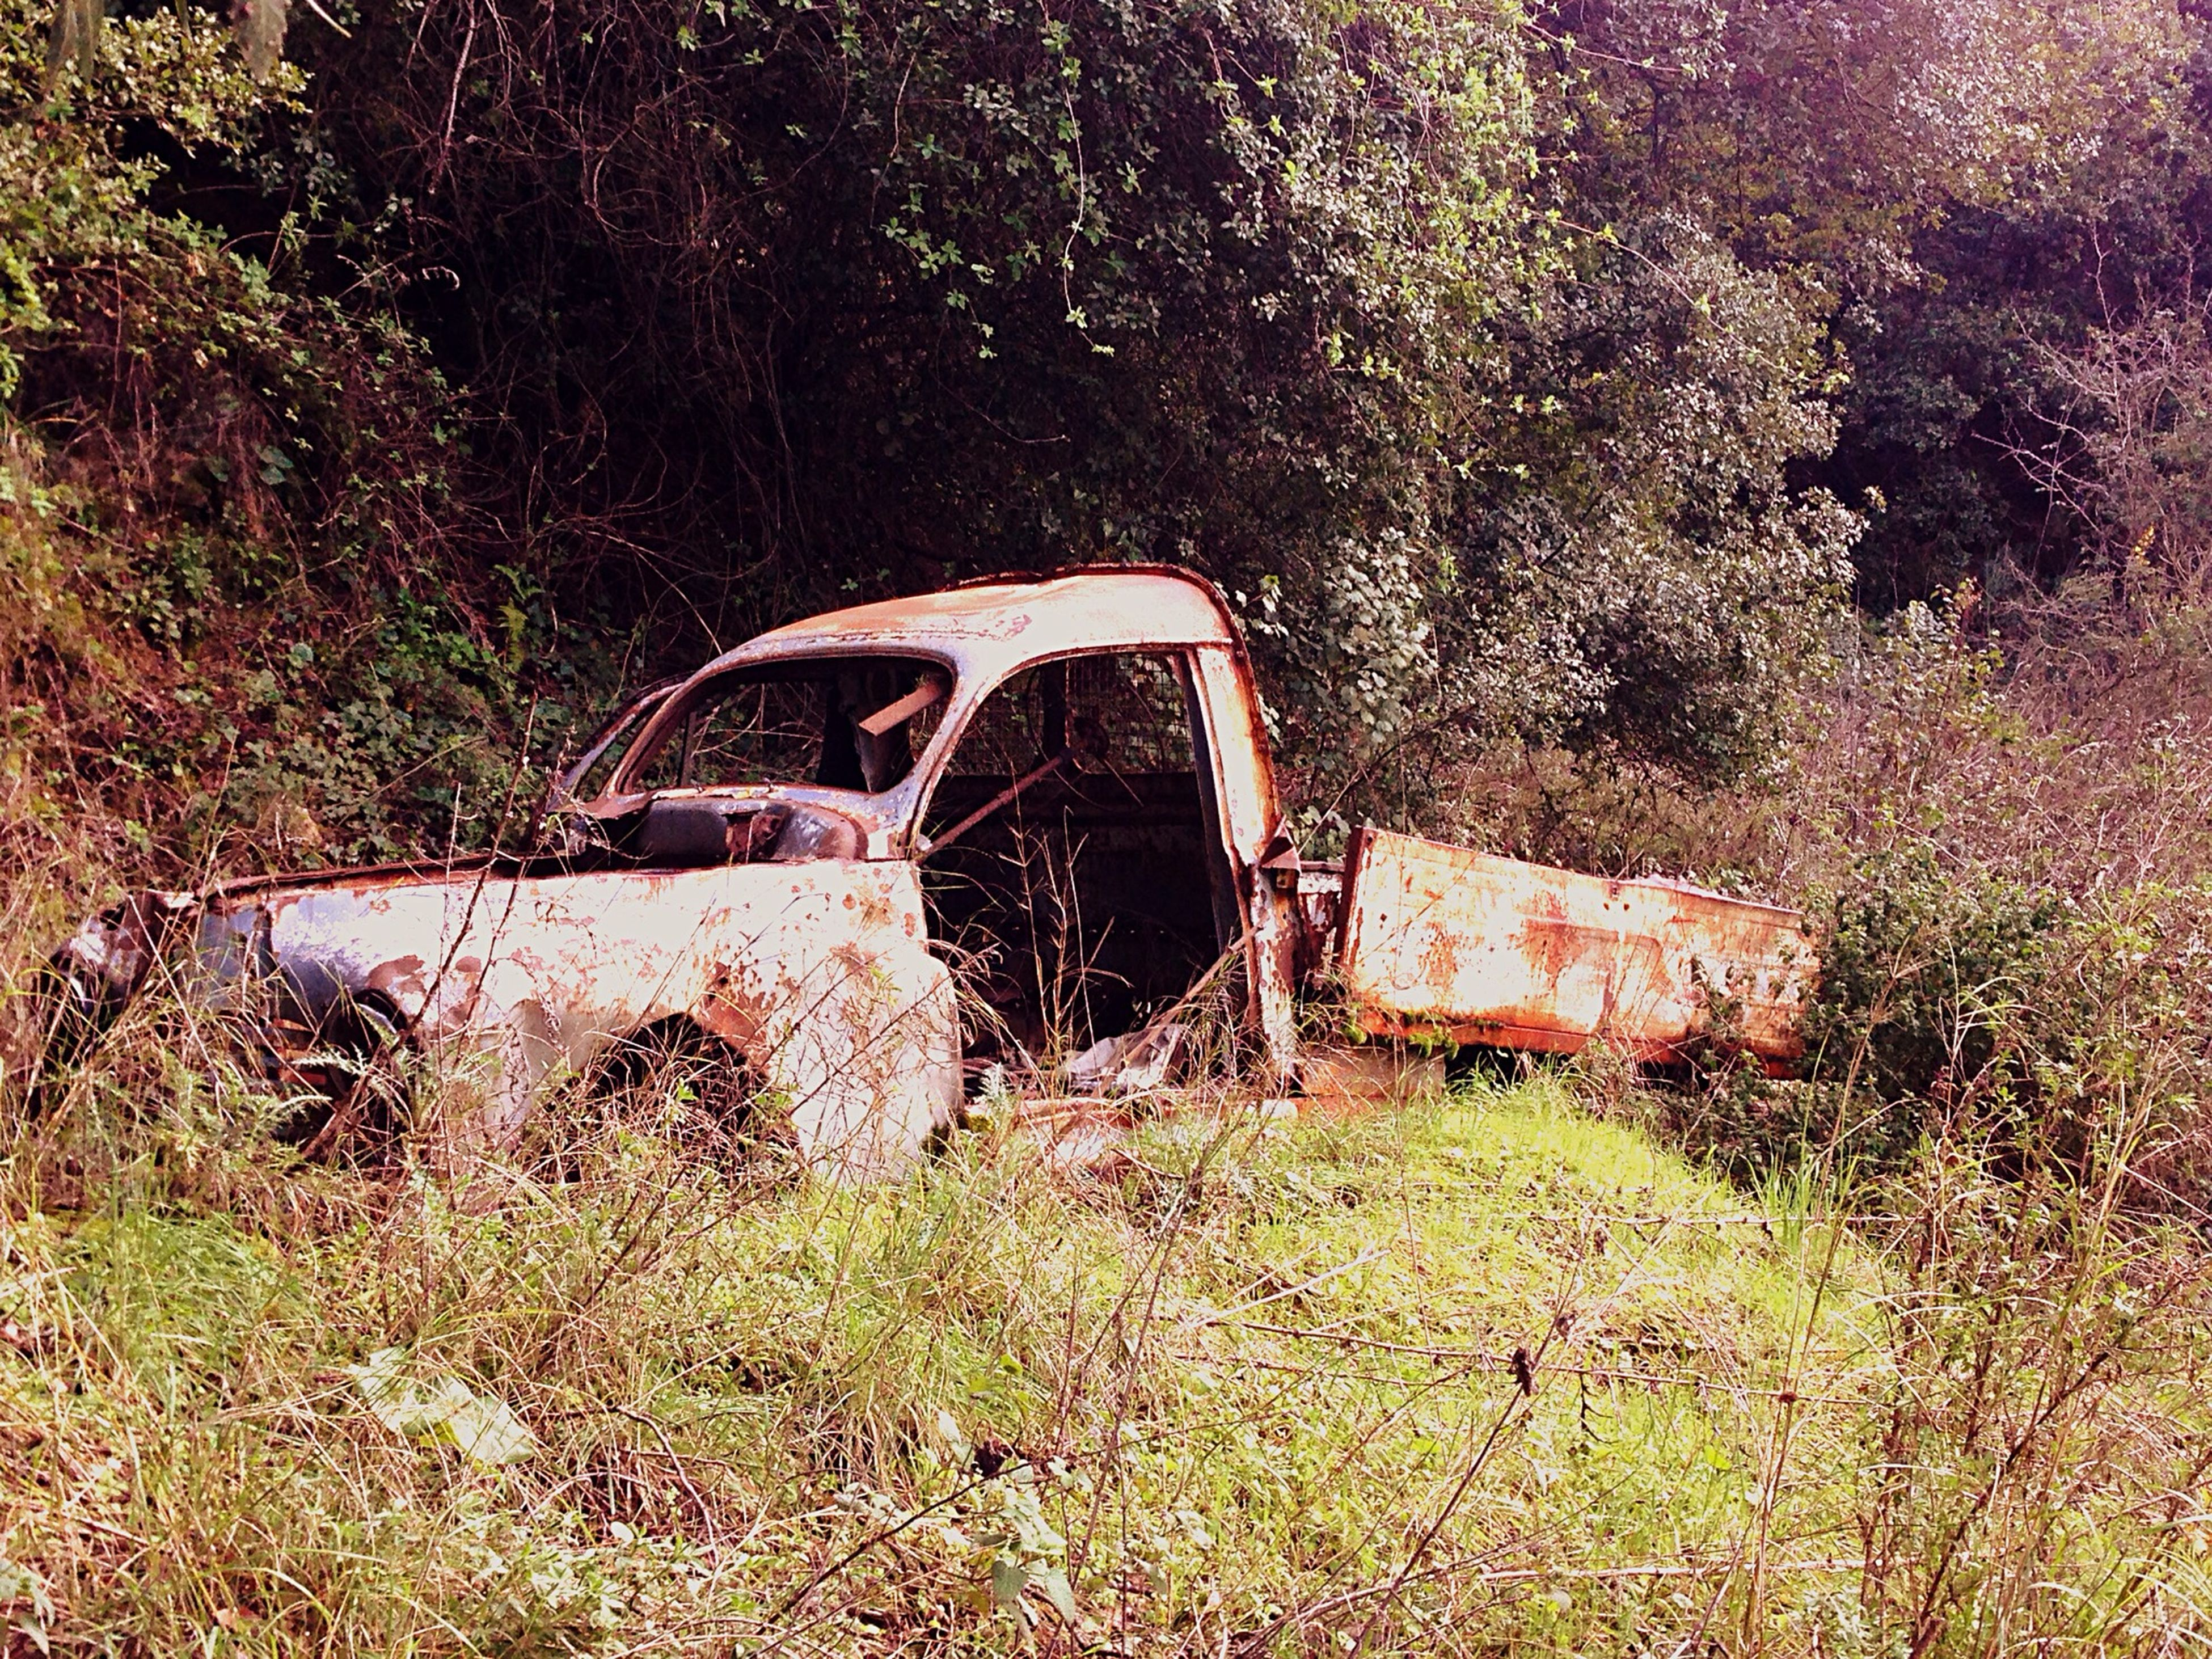 abandoned, obsolete, damaged, run-down, deterioration, old, transportation, mode of transport, grass, land vehicle, bad condition, rusty, field, weathered, tree, broken, car, destruction, day, no people